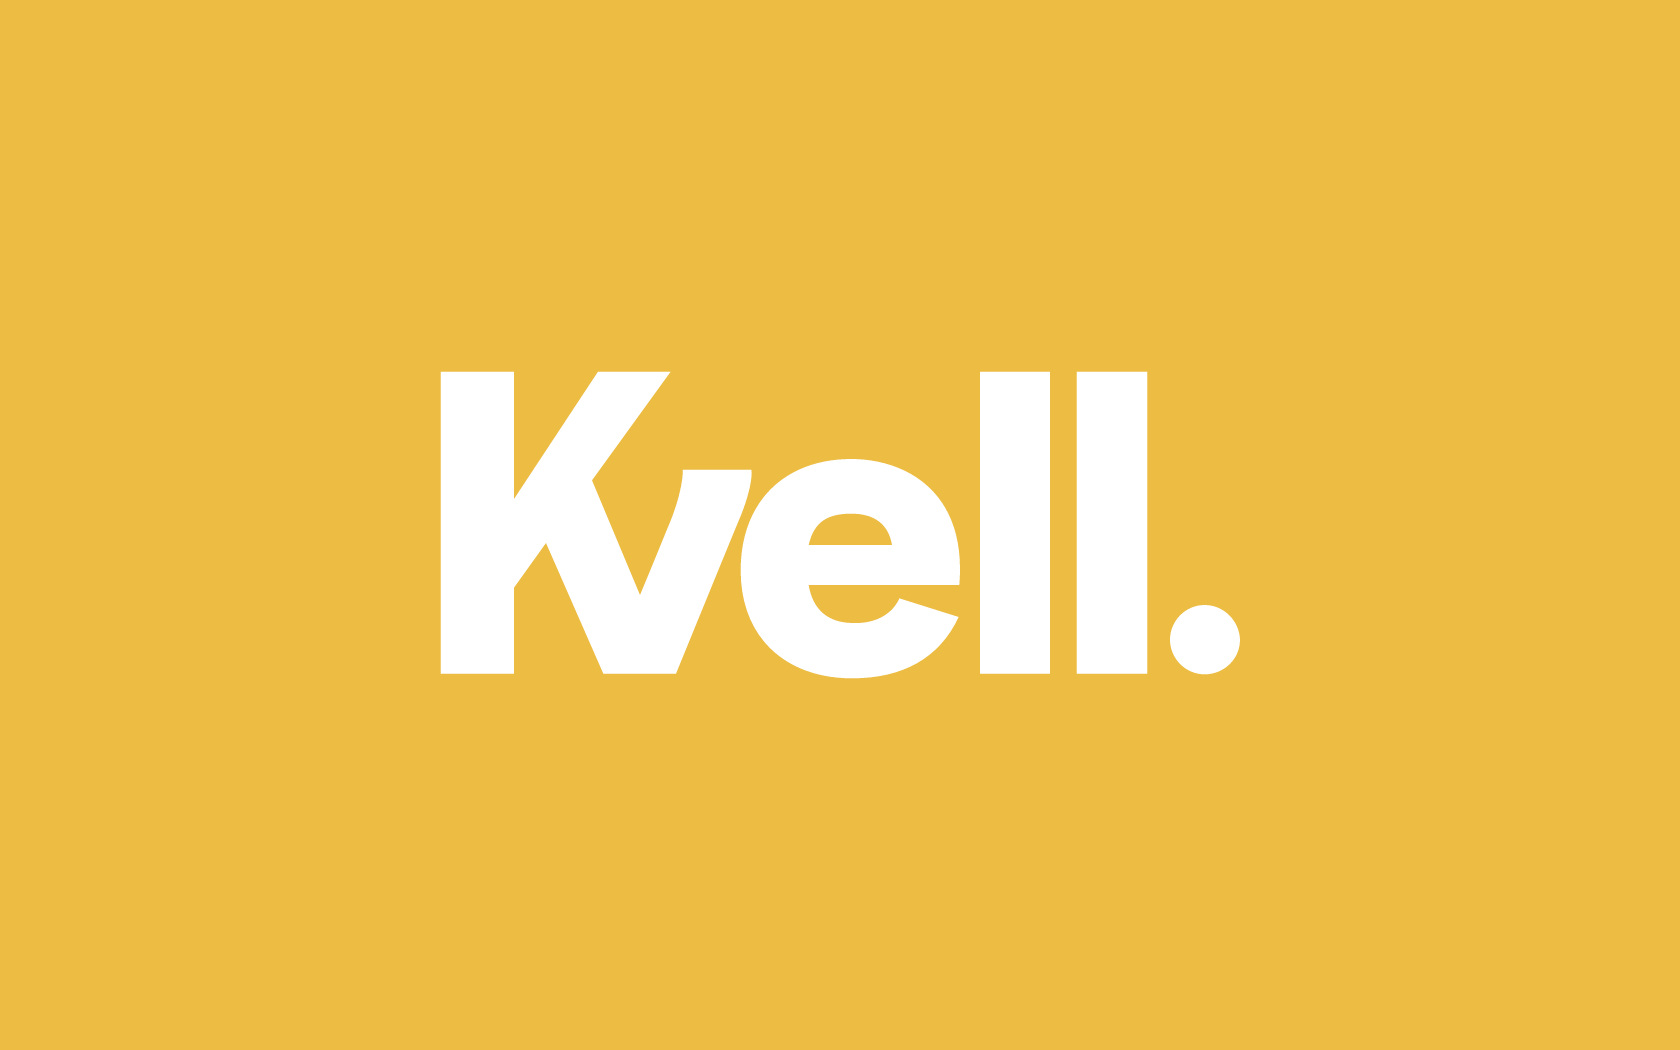 Kvell 01